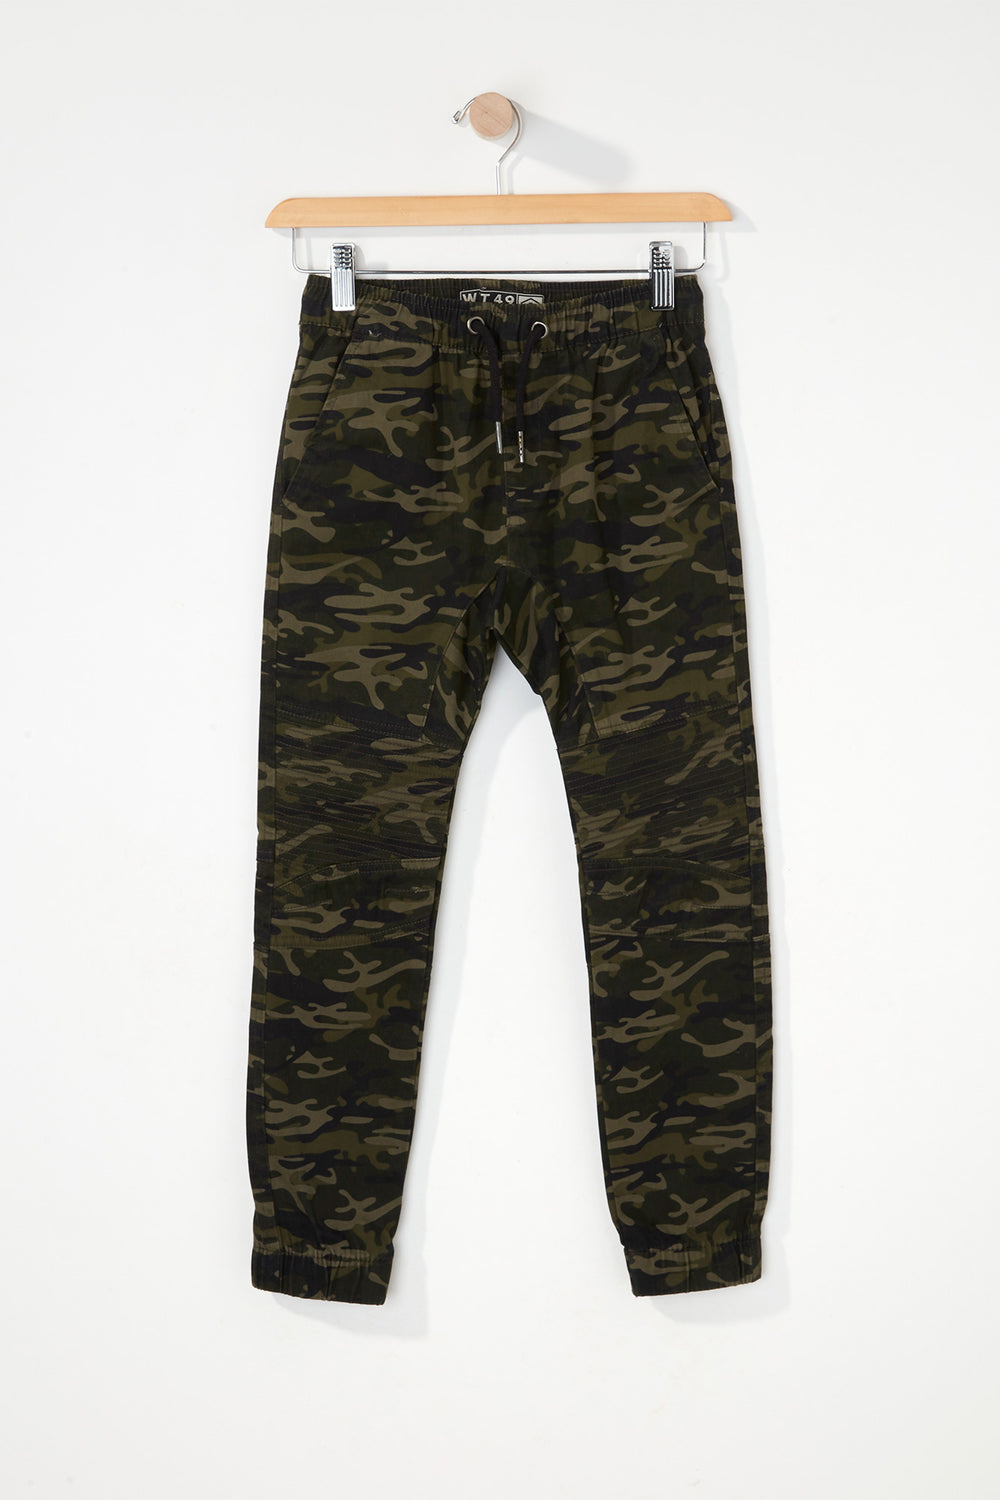 West49 Boys Camo Moto Jogger Camouflage